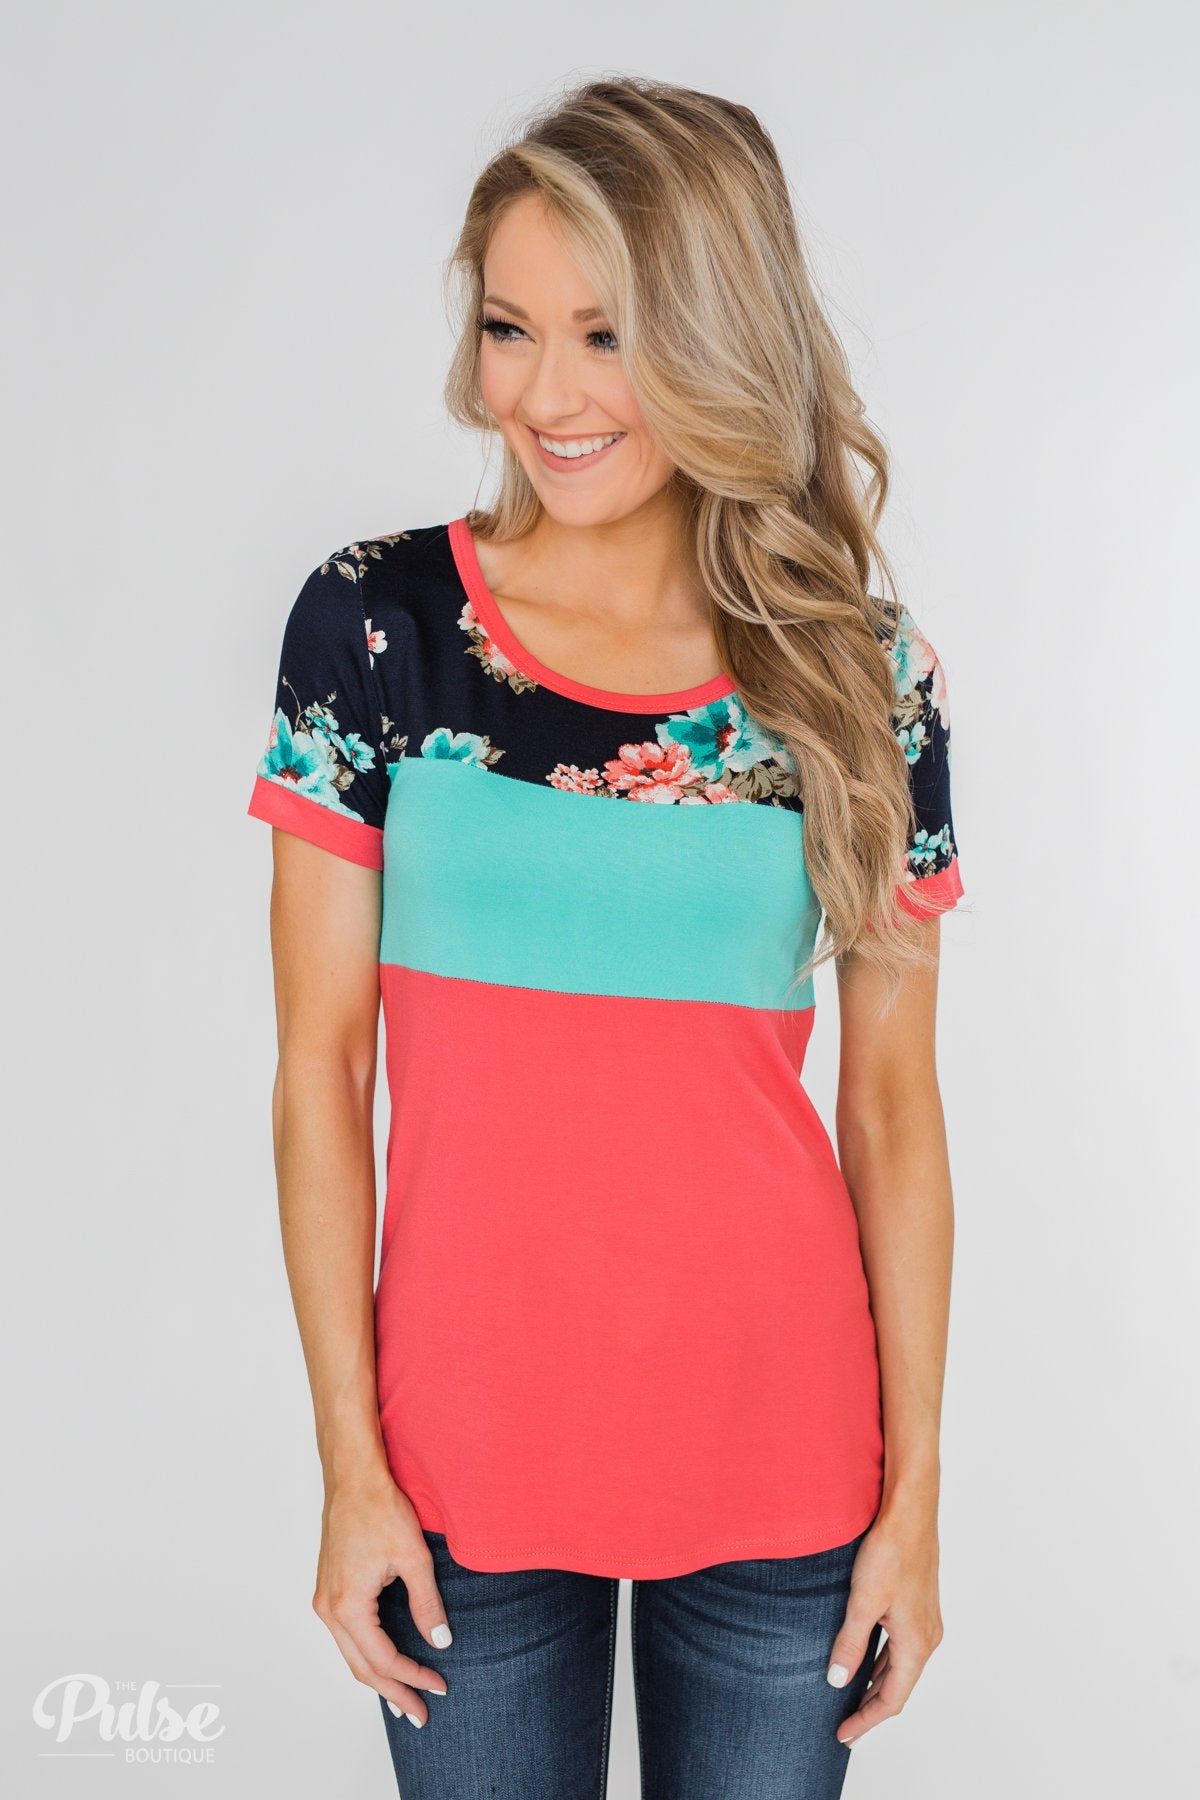 Illuminate The Room Floral Color Block Top- Dark Pink & Navy